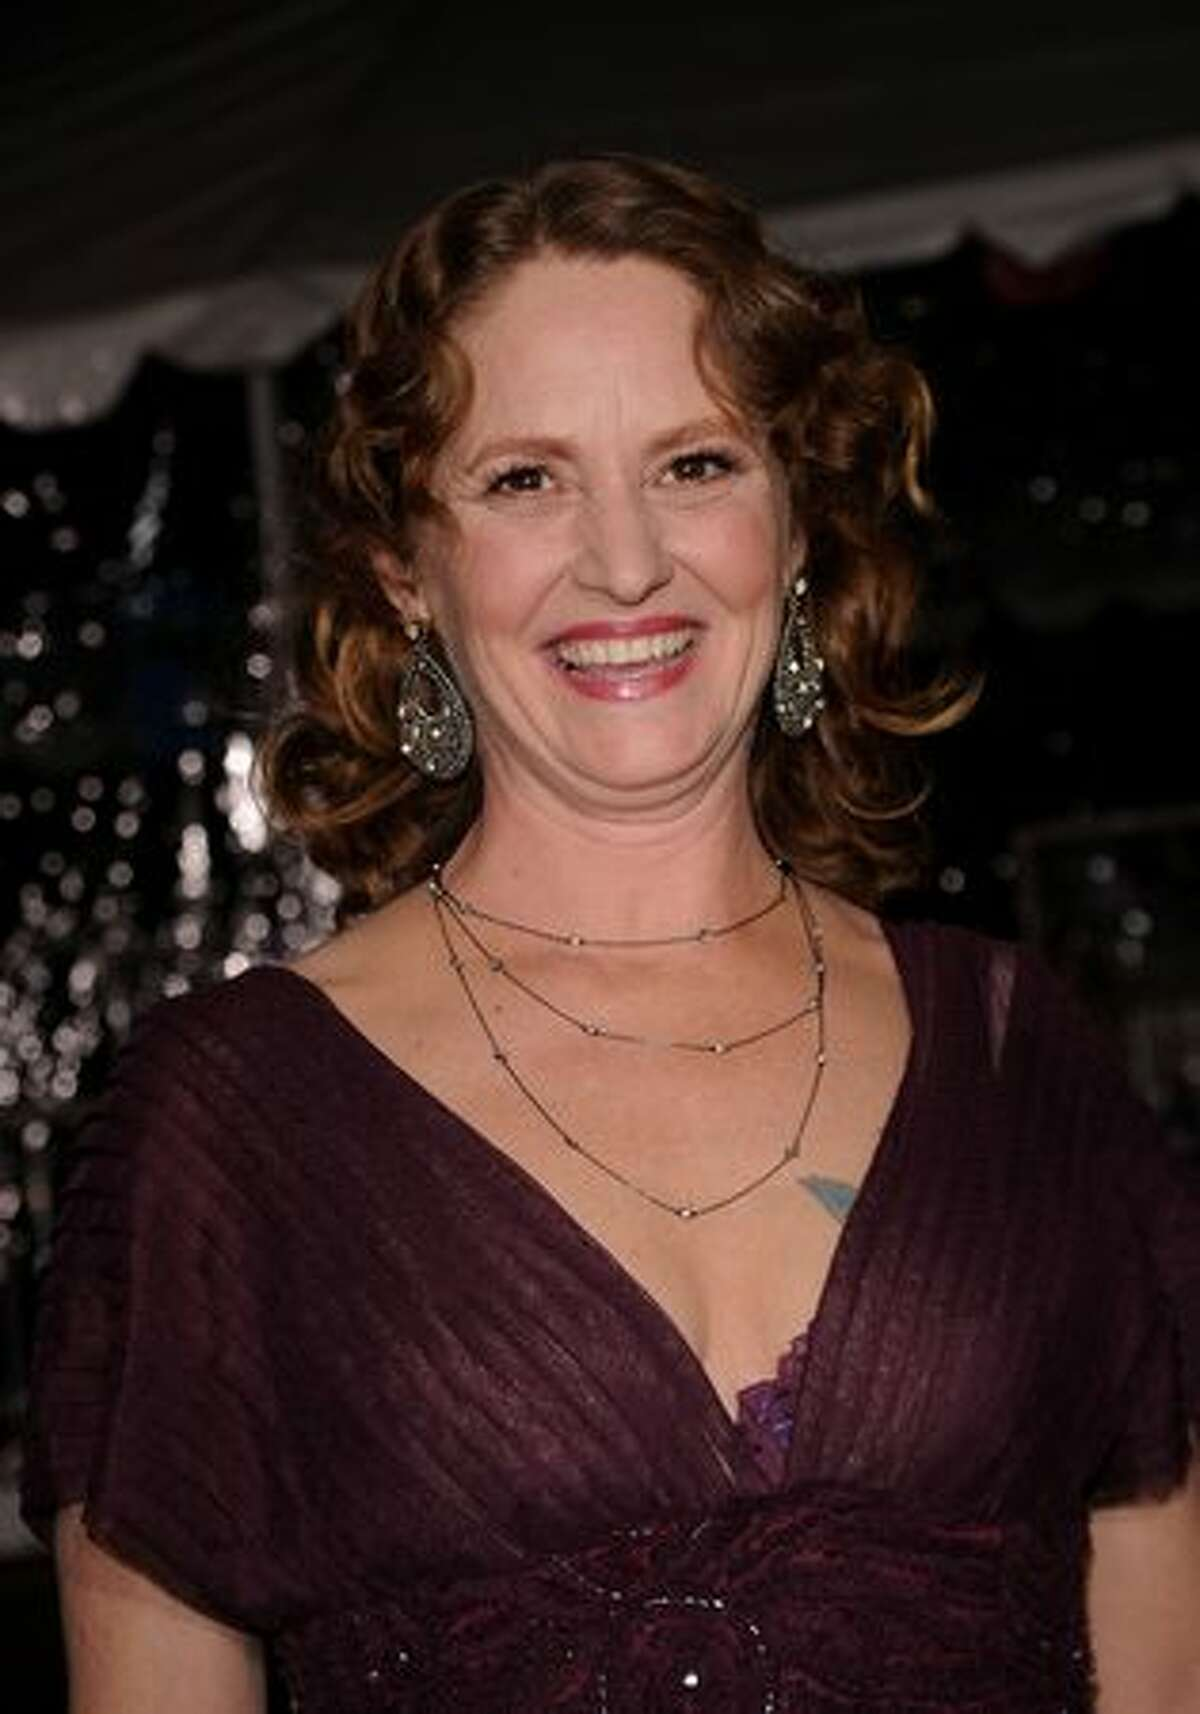 Actress Melissa Leo arrives at Paramount Pictures'